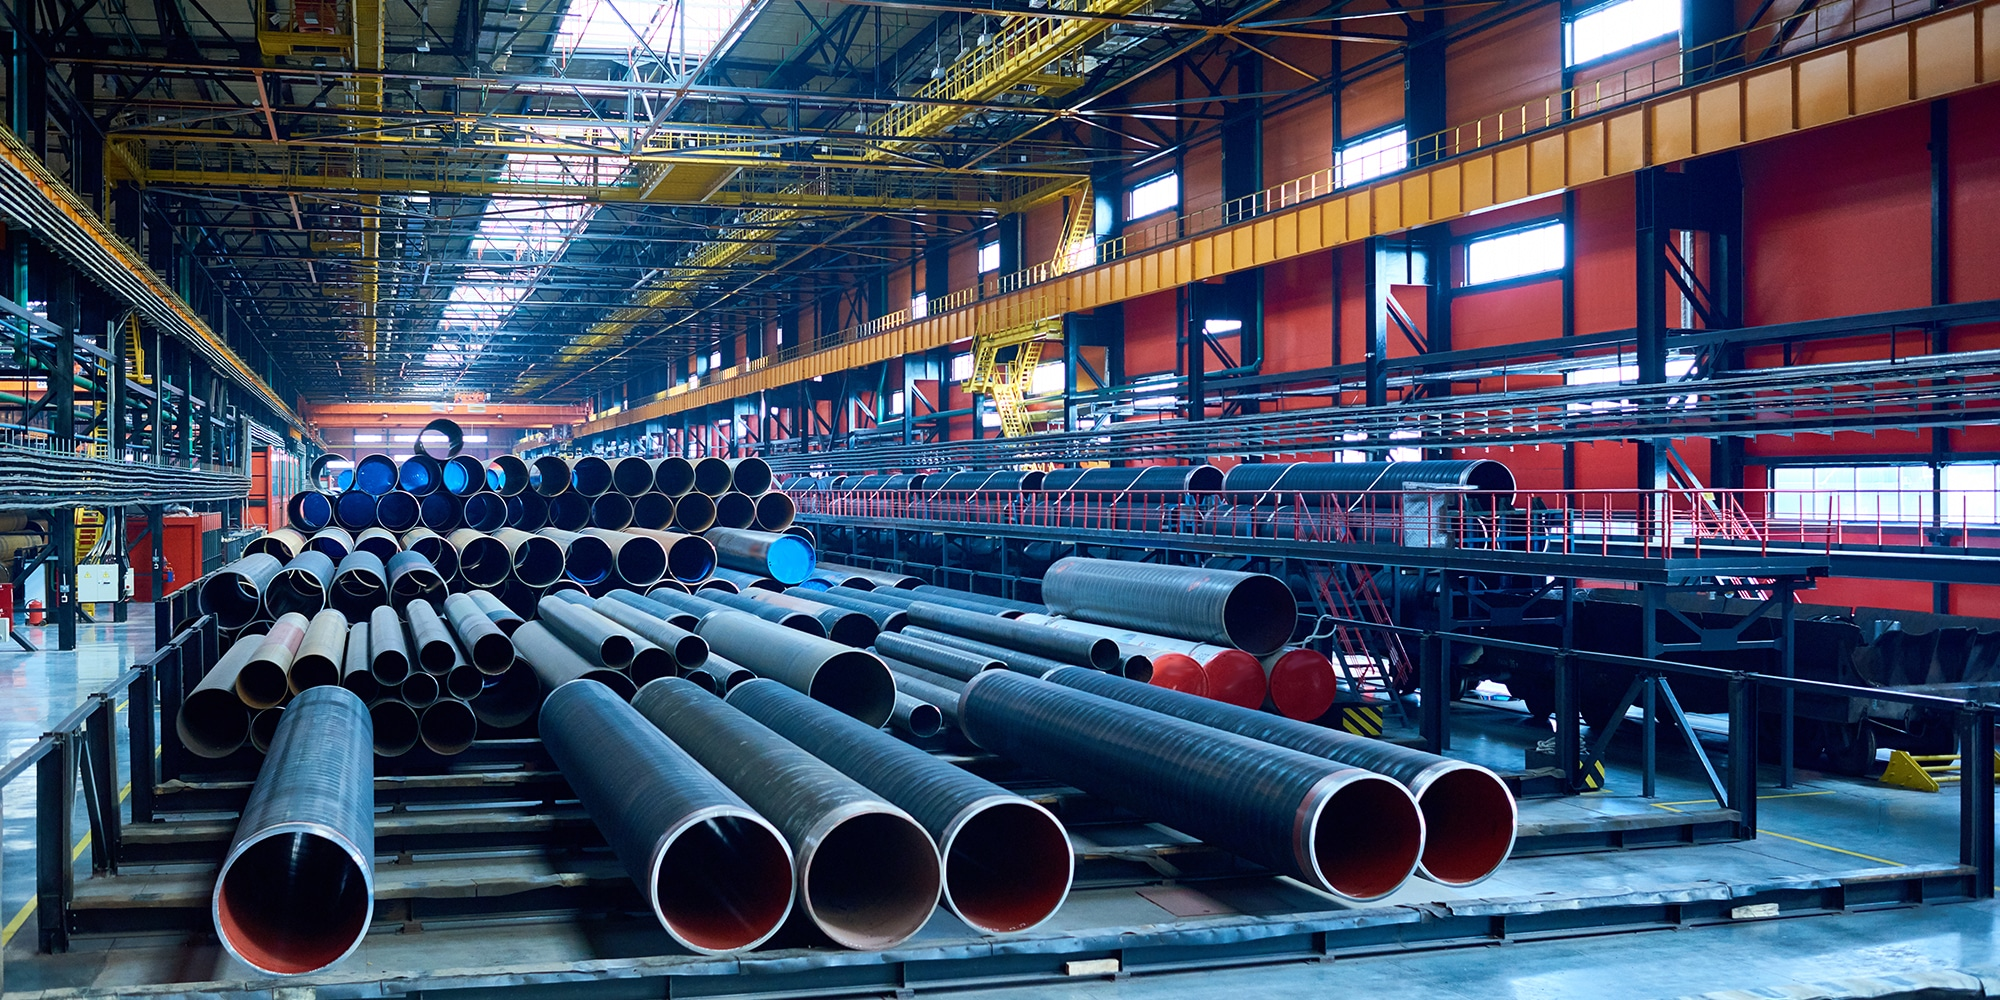 Warehouse with steel tubes stored